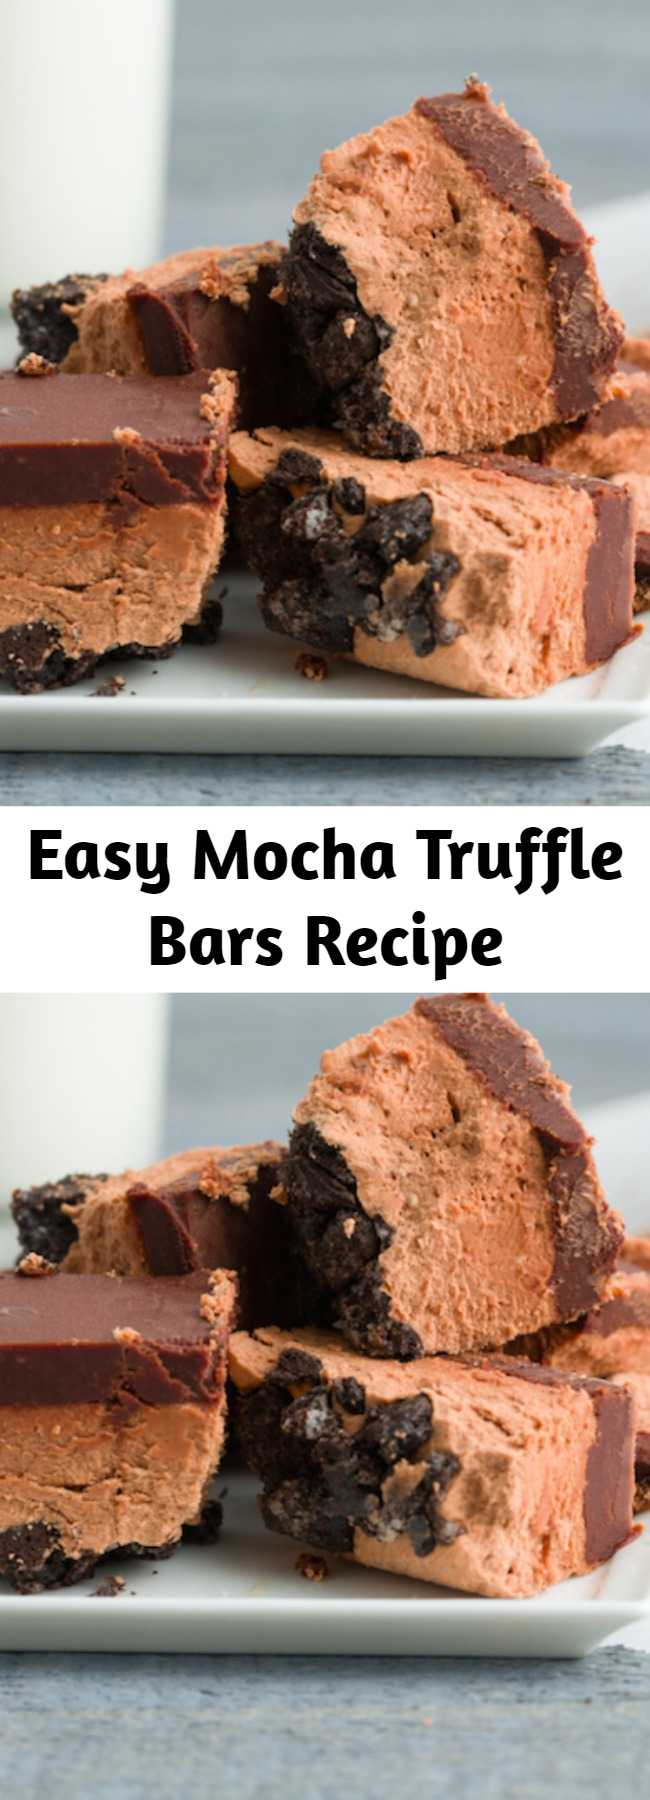 Easy Mocha Truffle Bars Recipe - Get your coffee and chocolate fix in one bite.